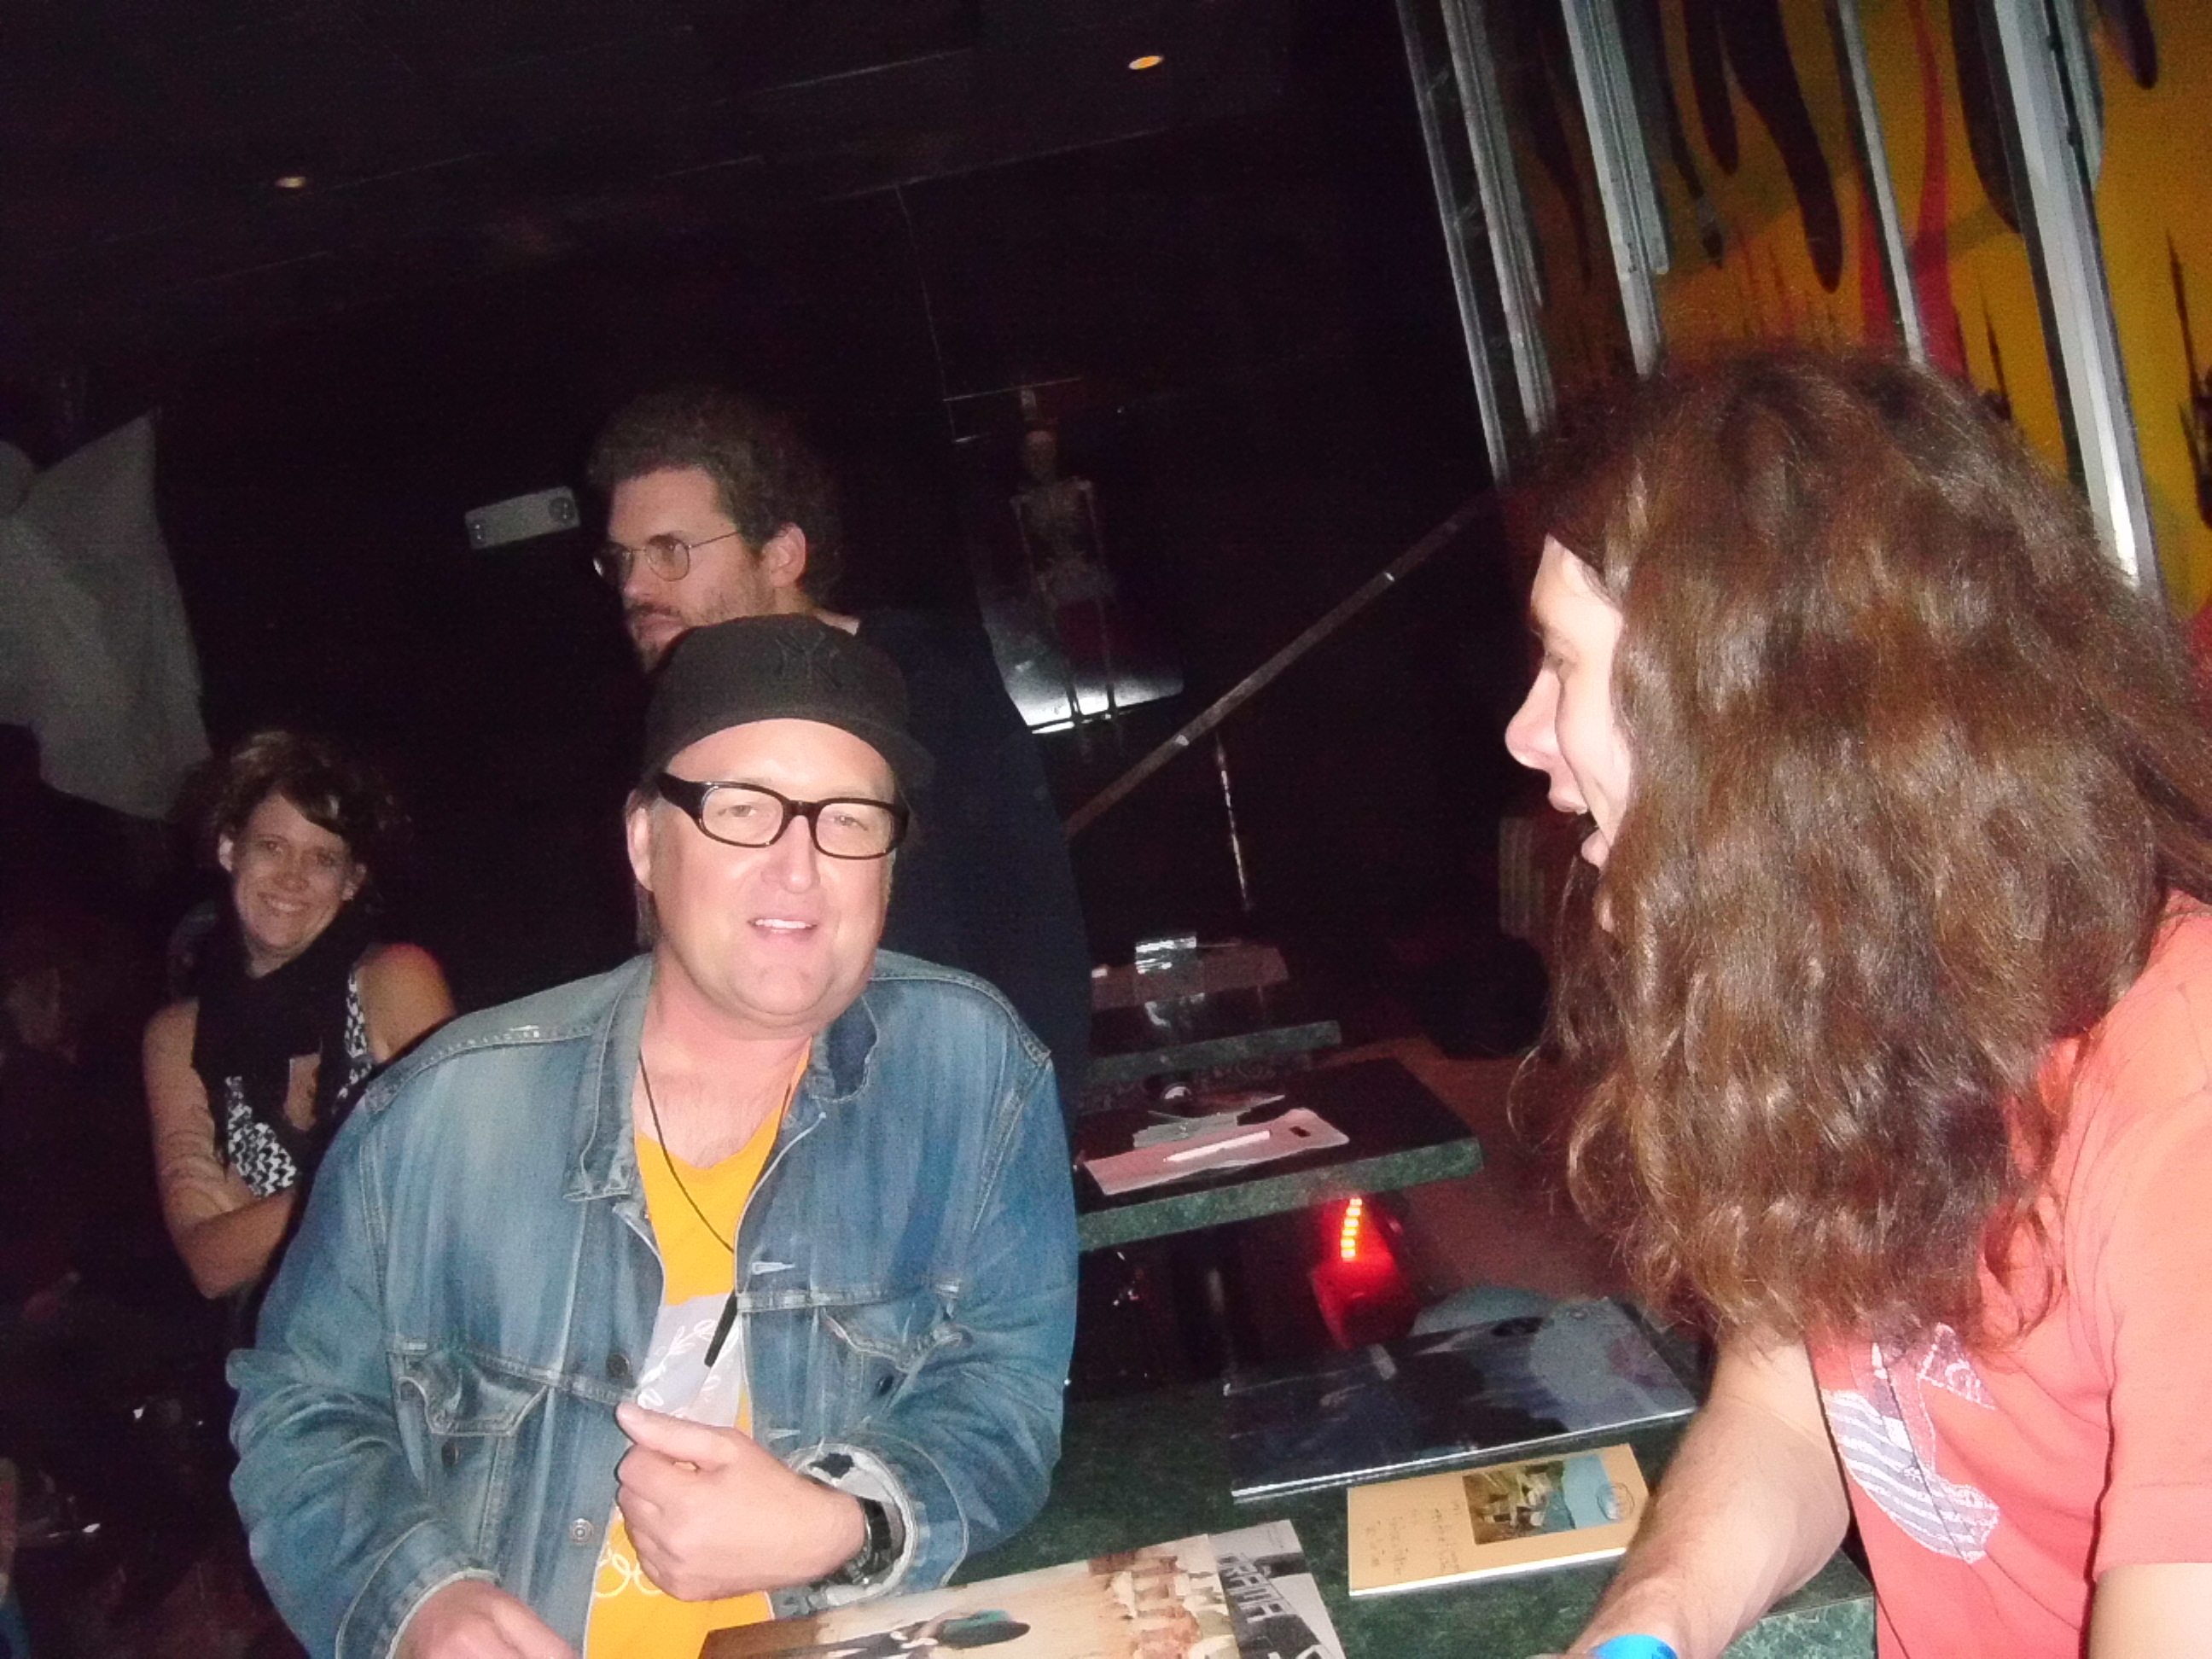 Stu checks if Kurt Vile has that 20 bucks he owes him